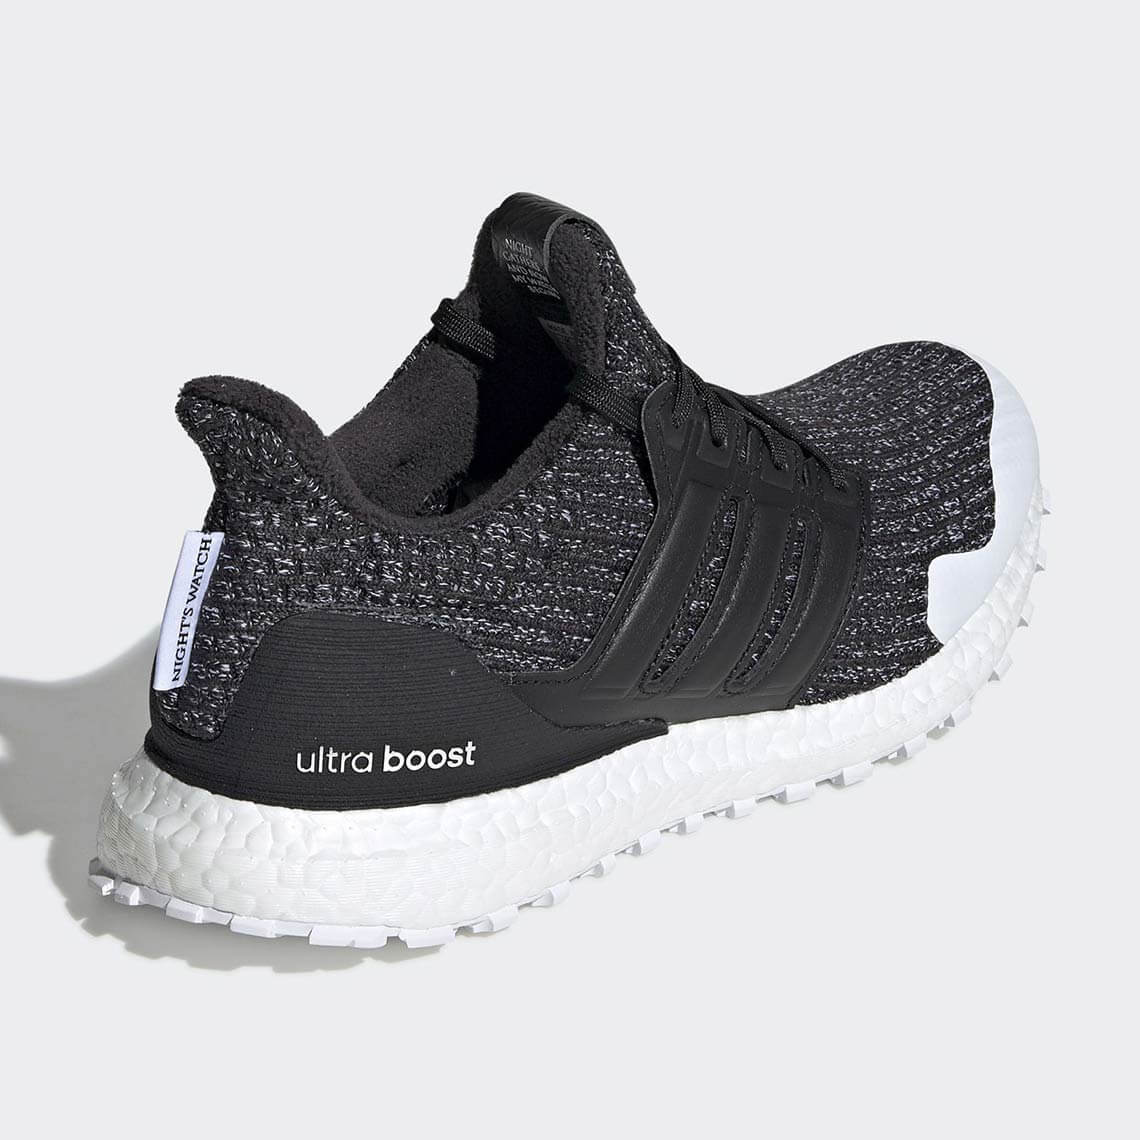 game of thrones adidas ultra boost nights watch EE3707 3